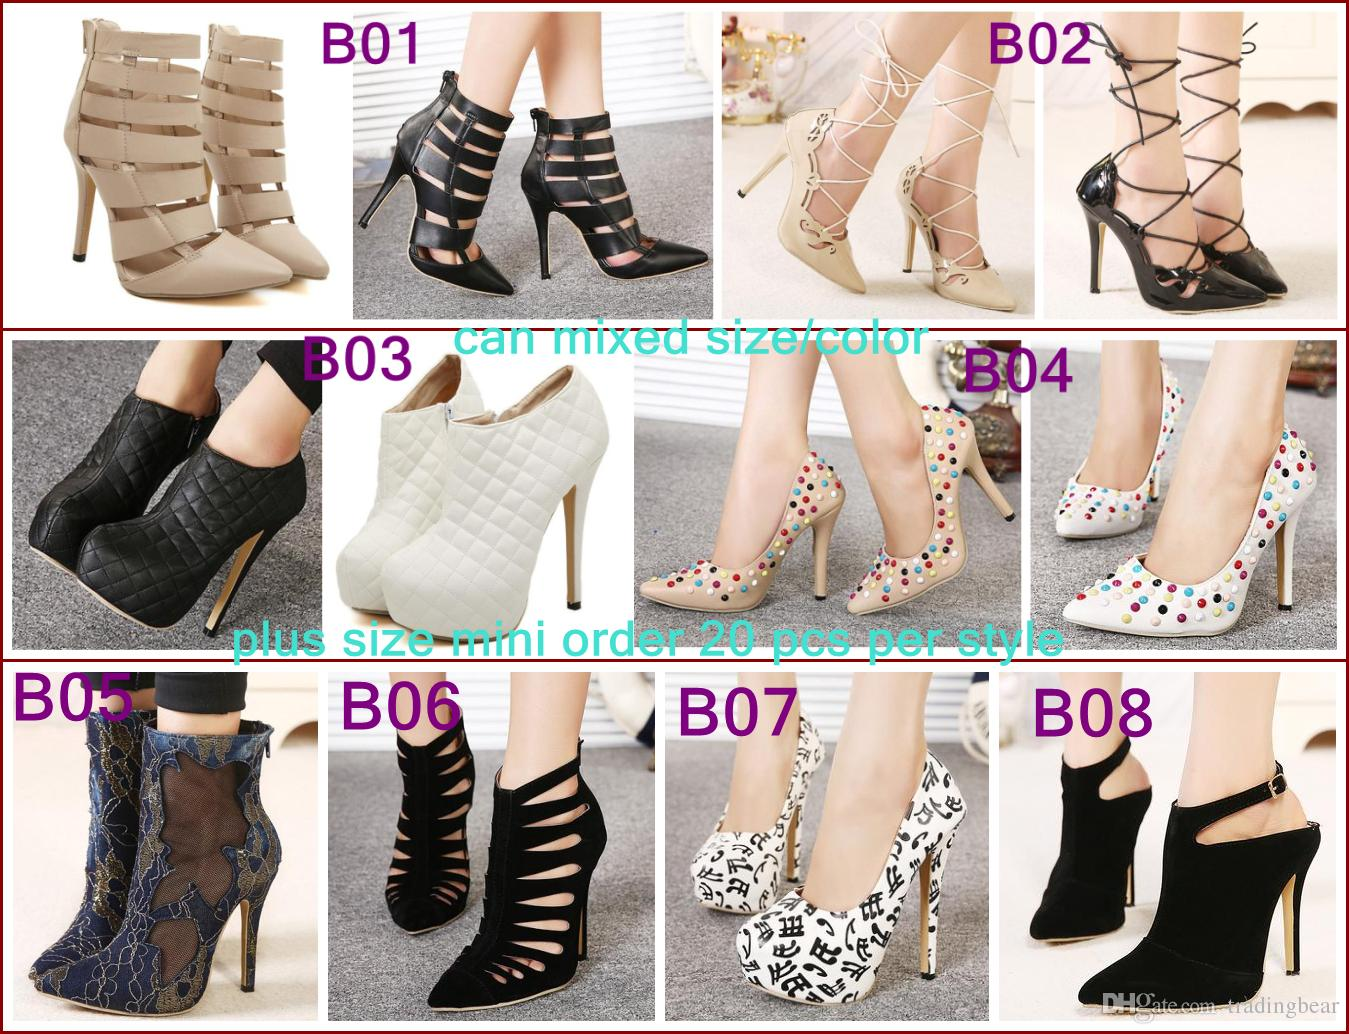 d7ff207f12 Lowest Price Winter Boots Ankle Boots Women Shoes Wedding Shoes Pumps Sexy  High Heels Plus Size Shoes Chukka Boots Ladies Shoes From Tradingbear, ...